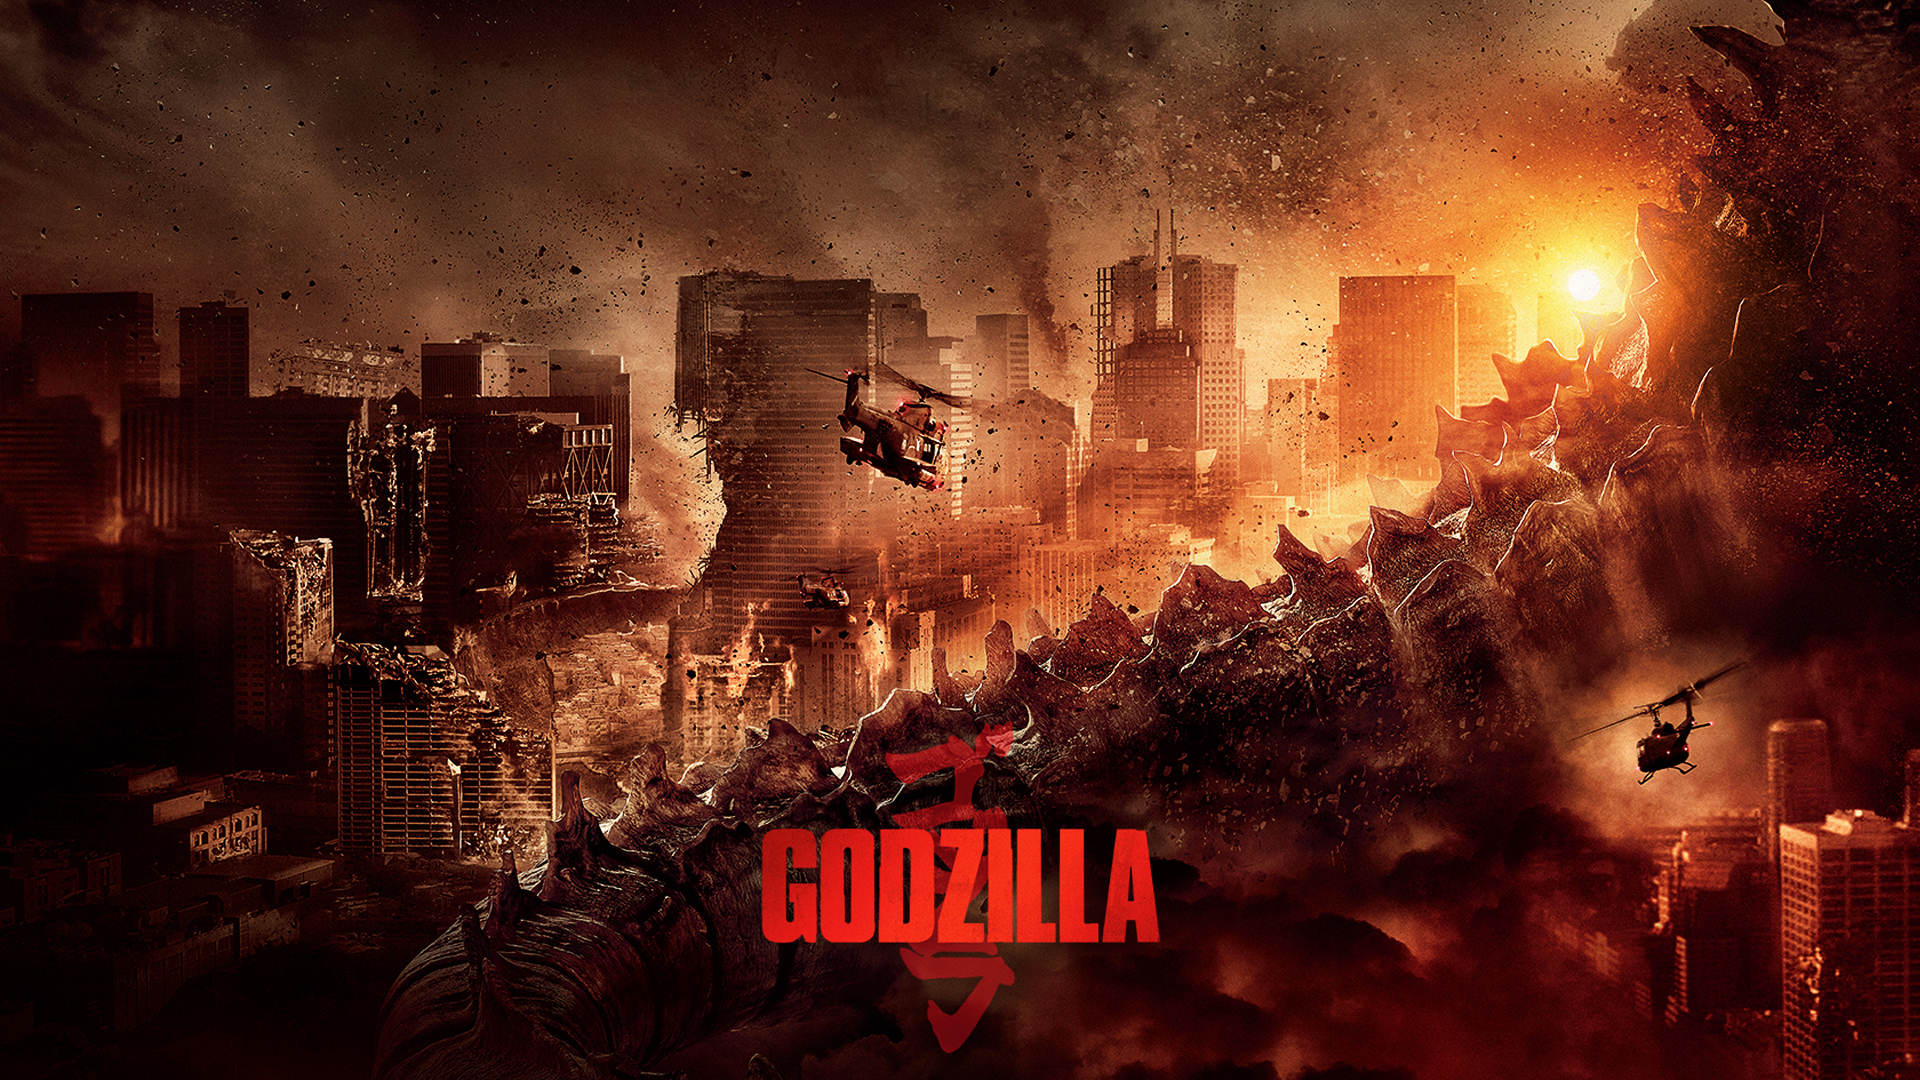 Godzilla 2014 Movie Wallpaper Godzilla Movie 2014 11...